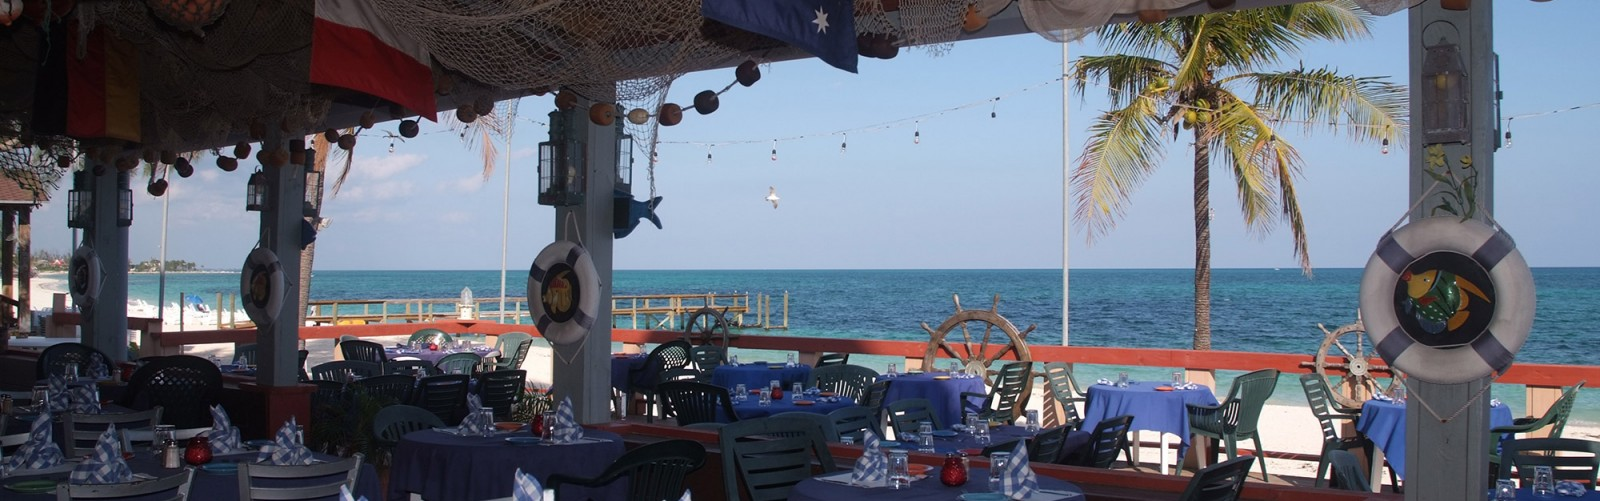 Fine Dining Restaurant by the Water